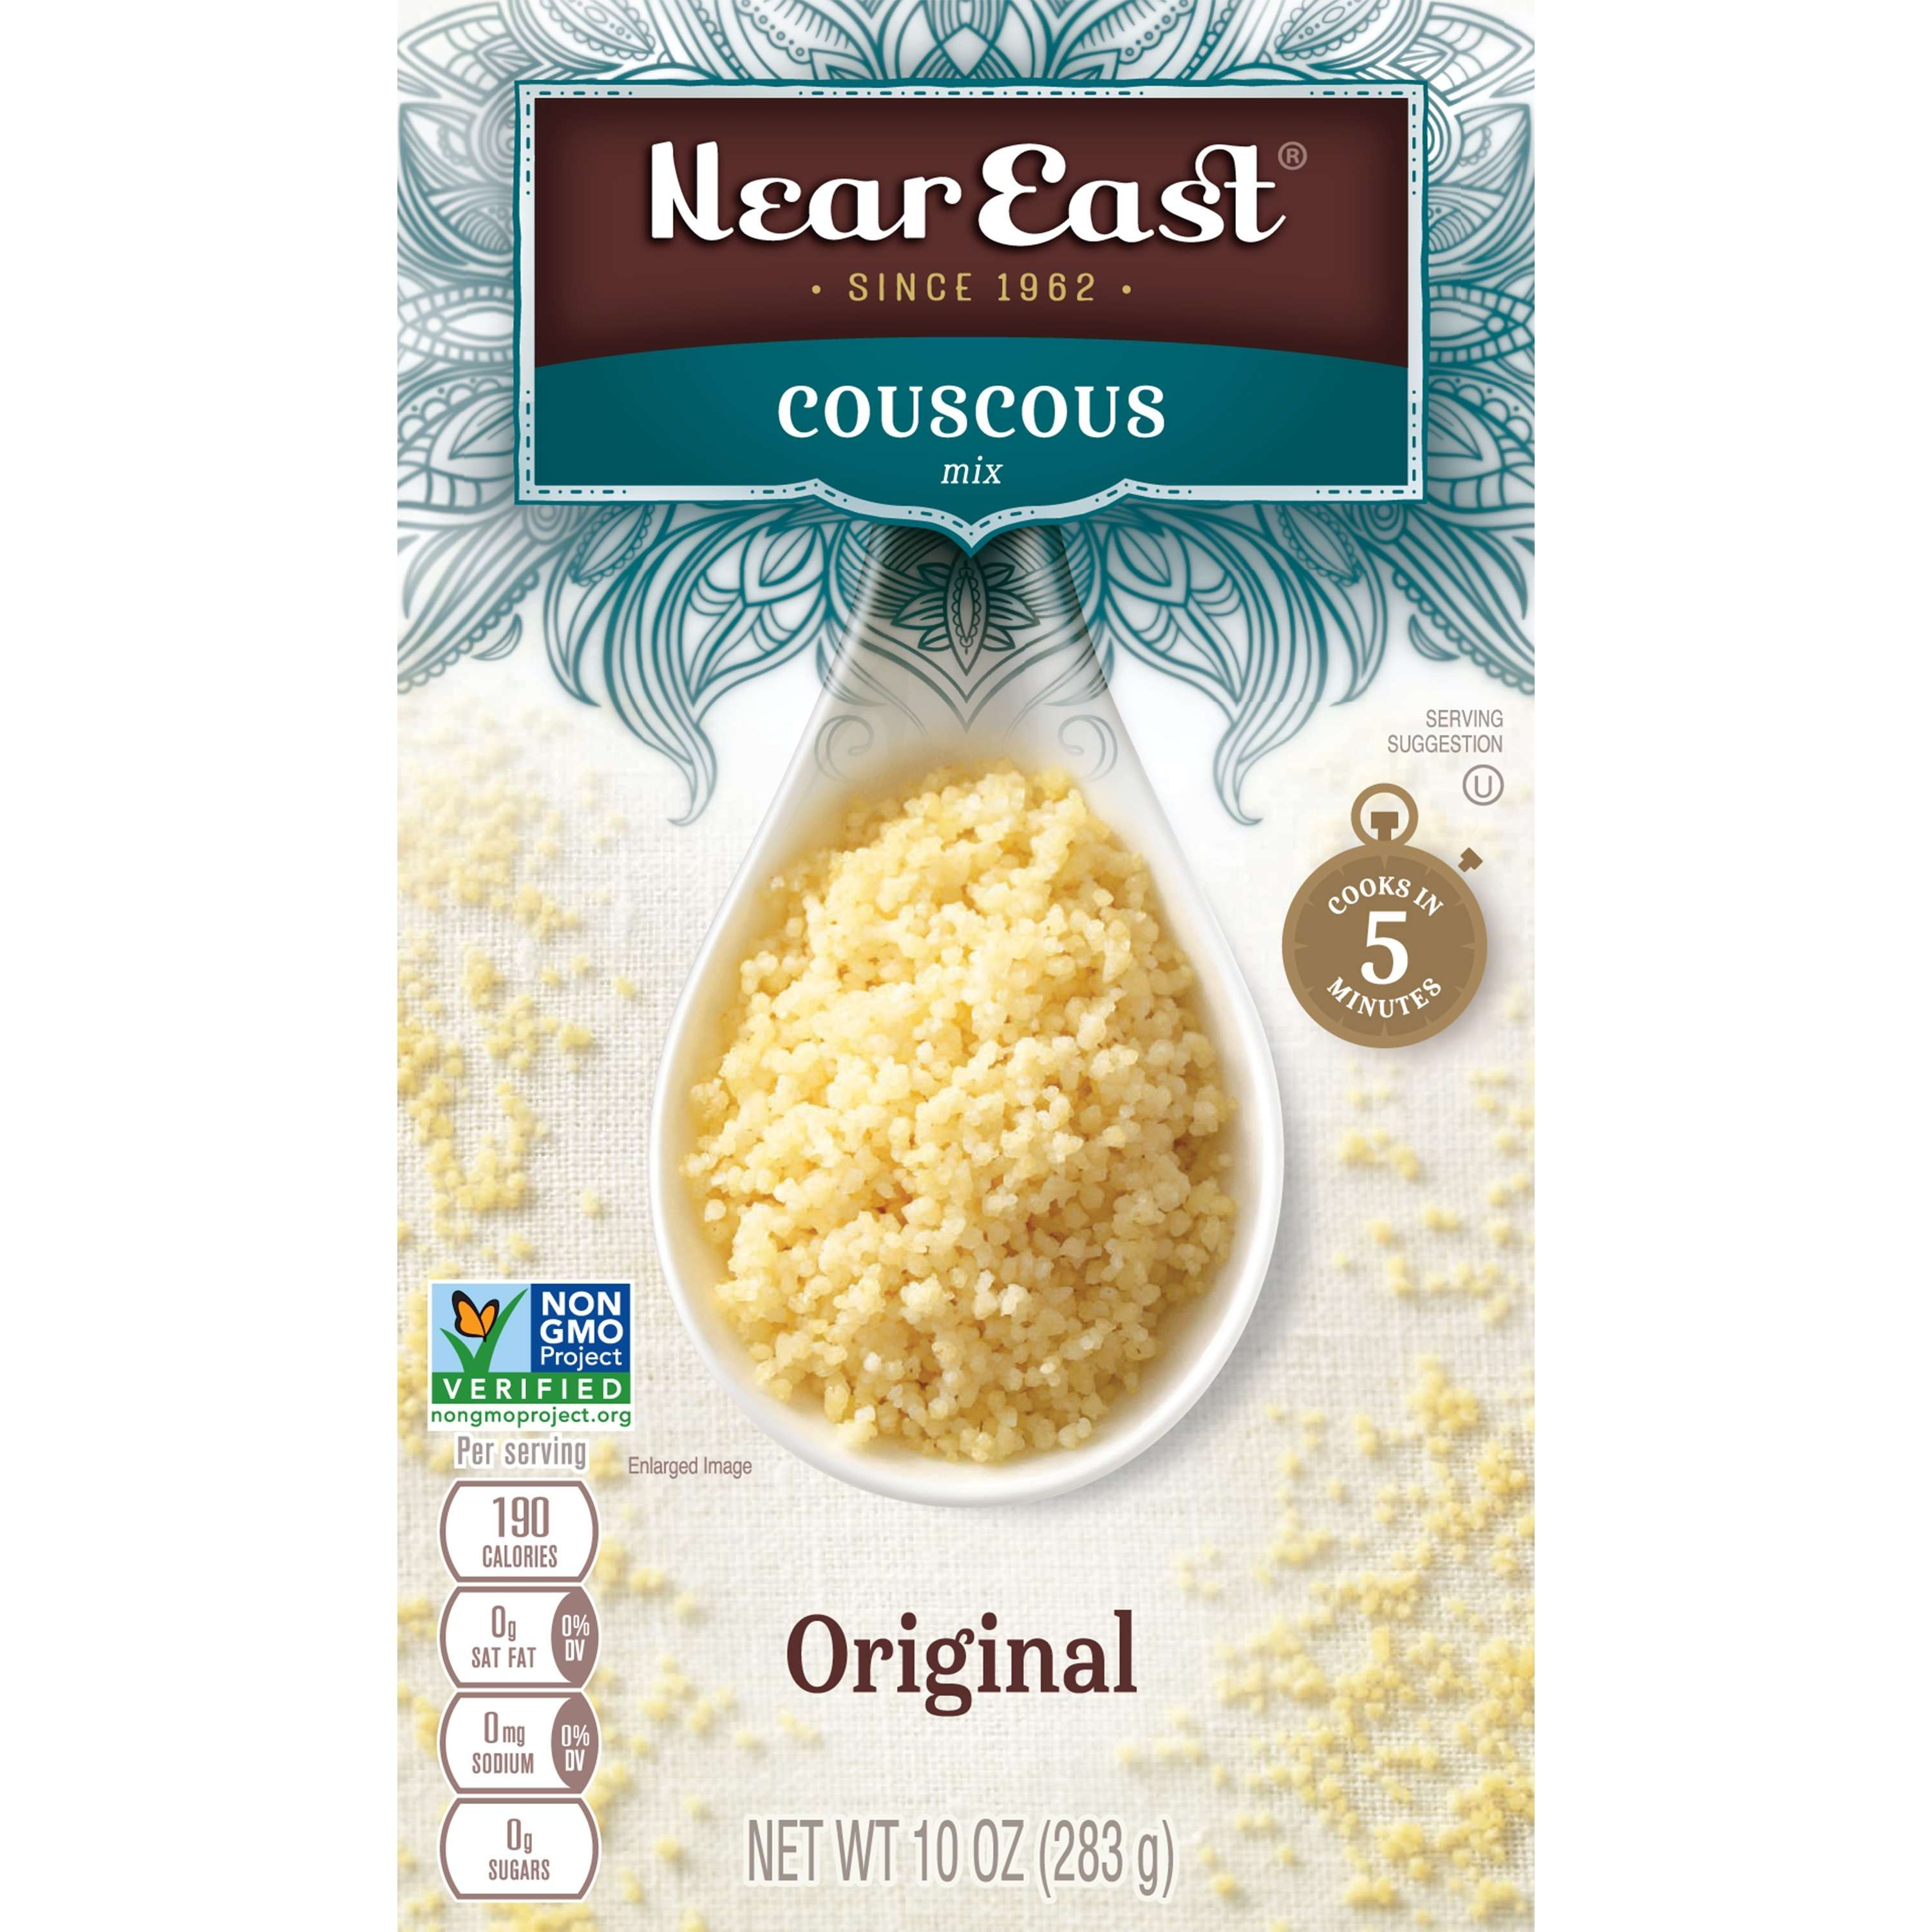 Near East Couscous Mix, Original, 10 oz Box